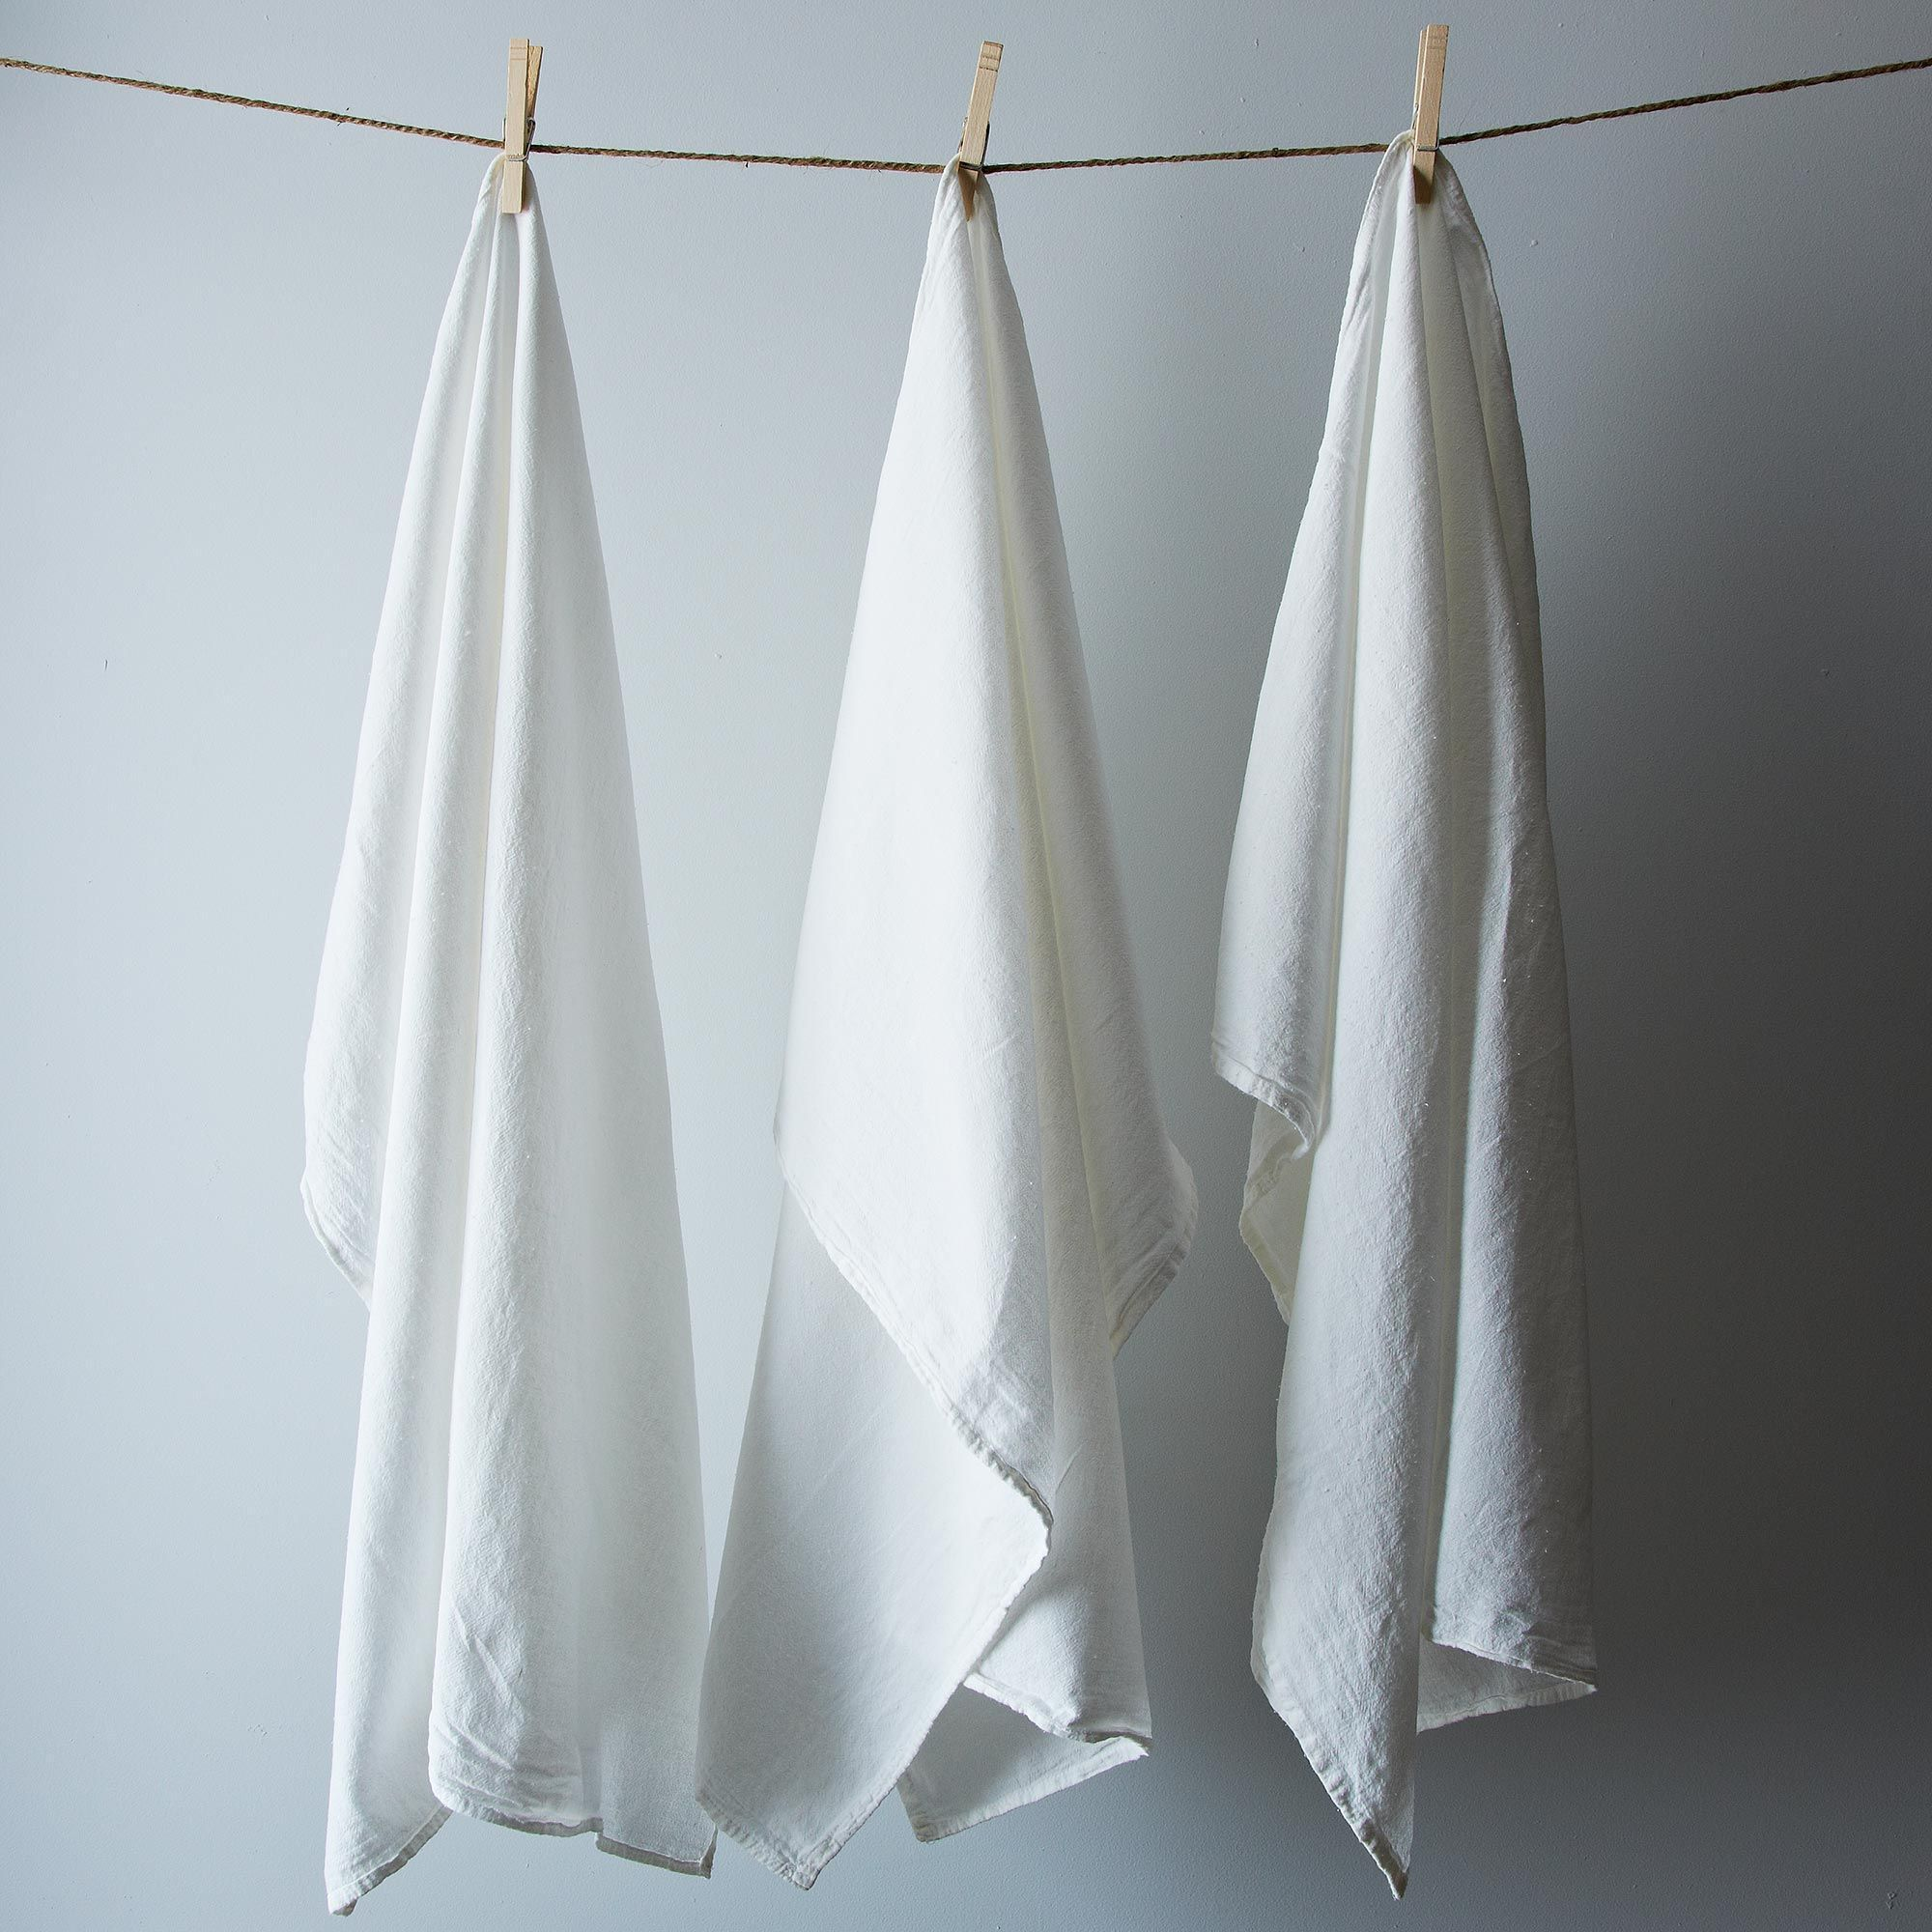 Da2854b7 2615 43d0 b854 7cce3b9d55e2  2013 0605 studiopatro flour sack towels set of 3 017